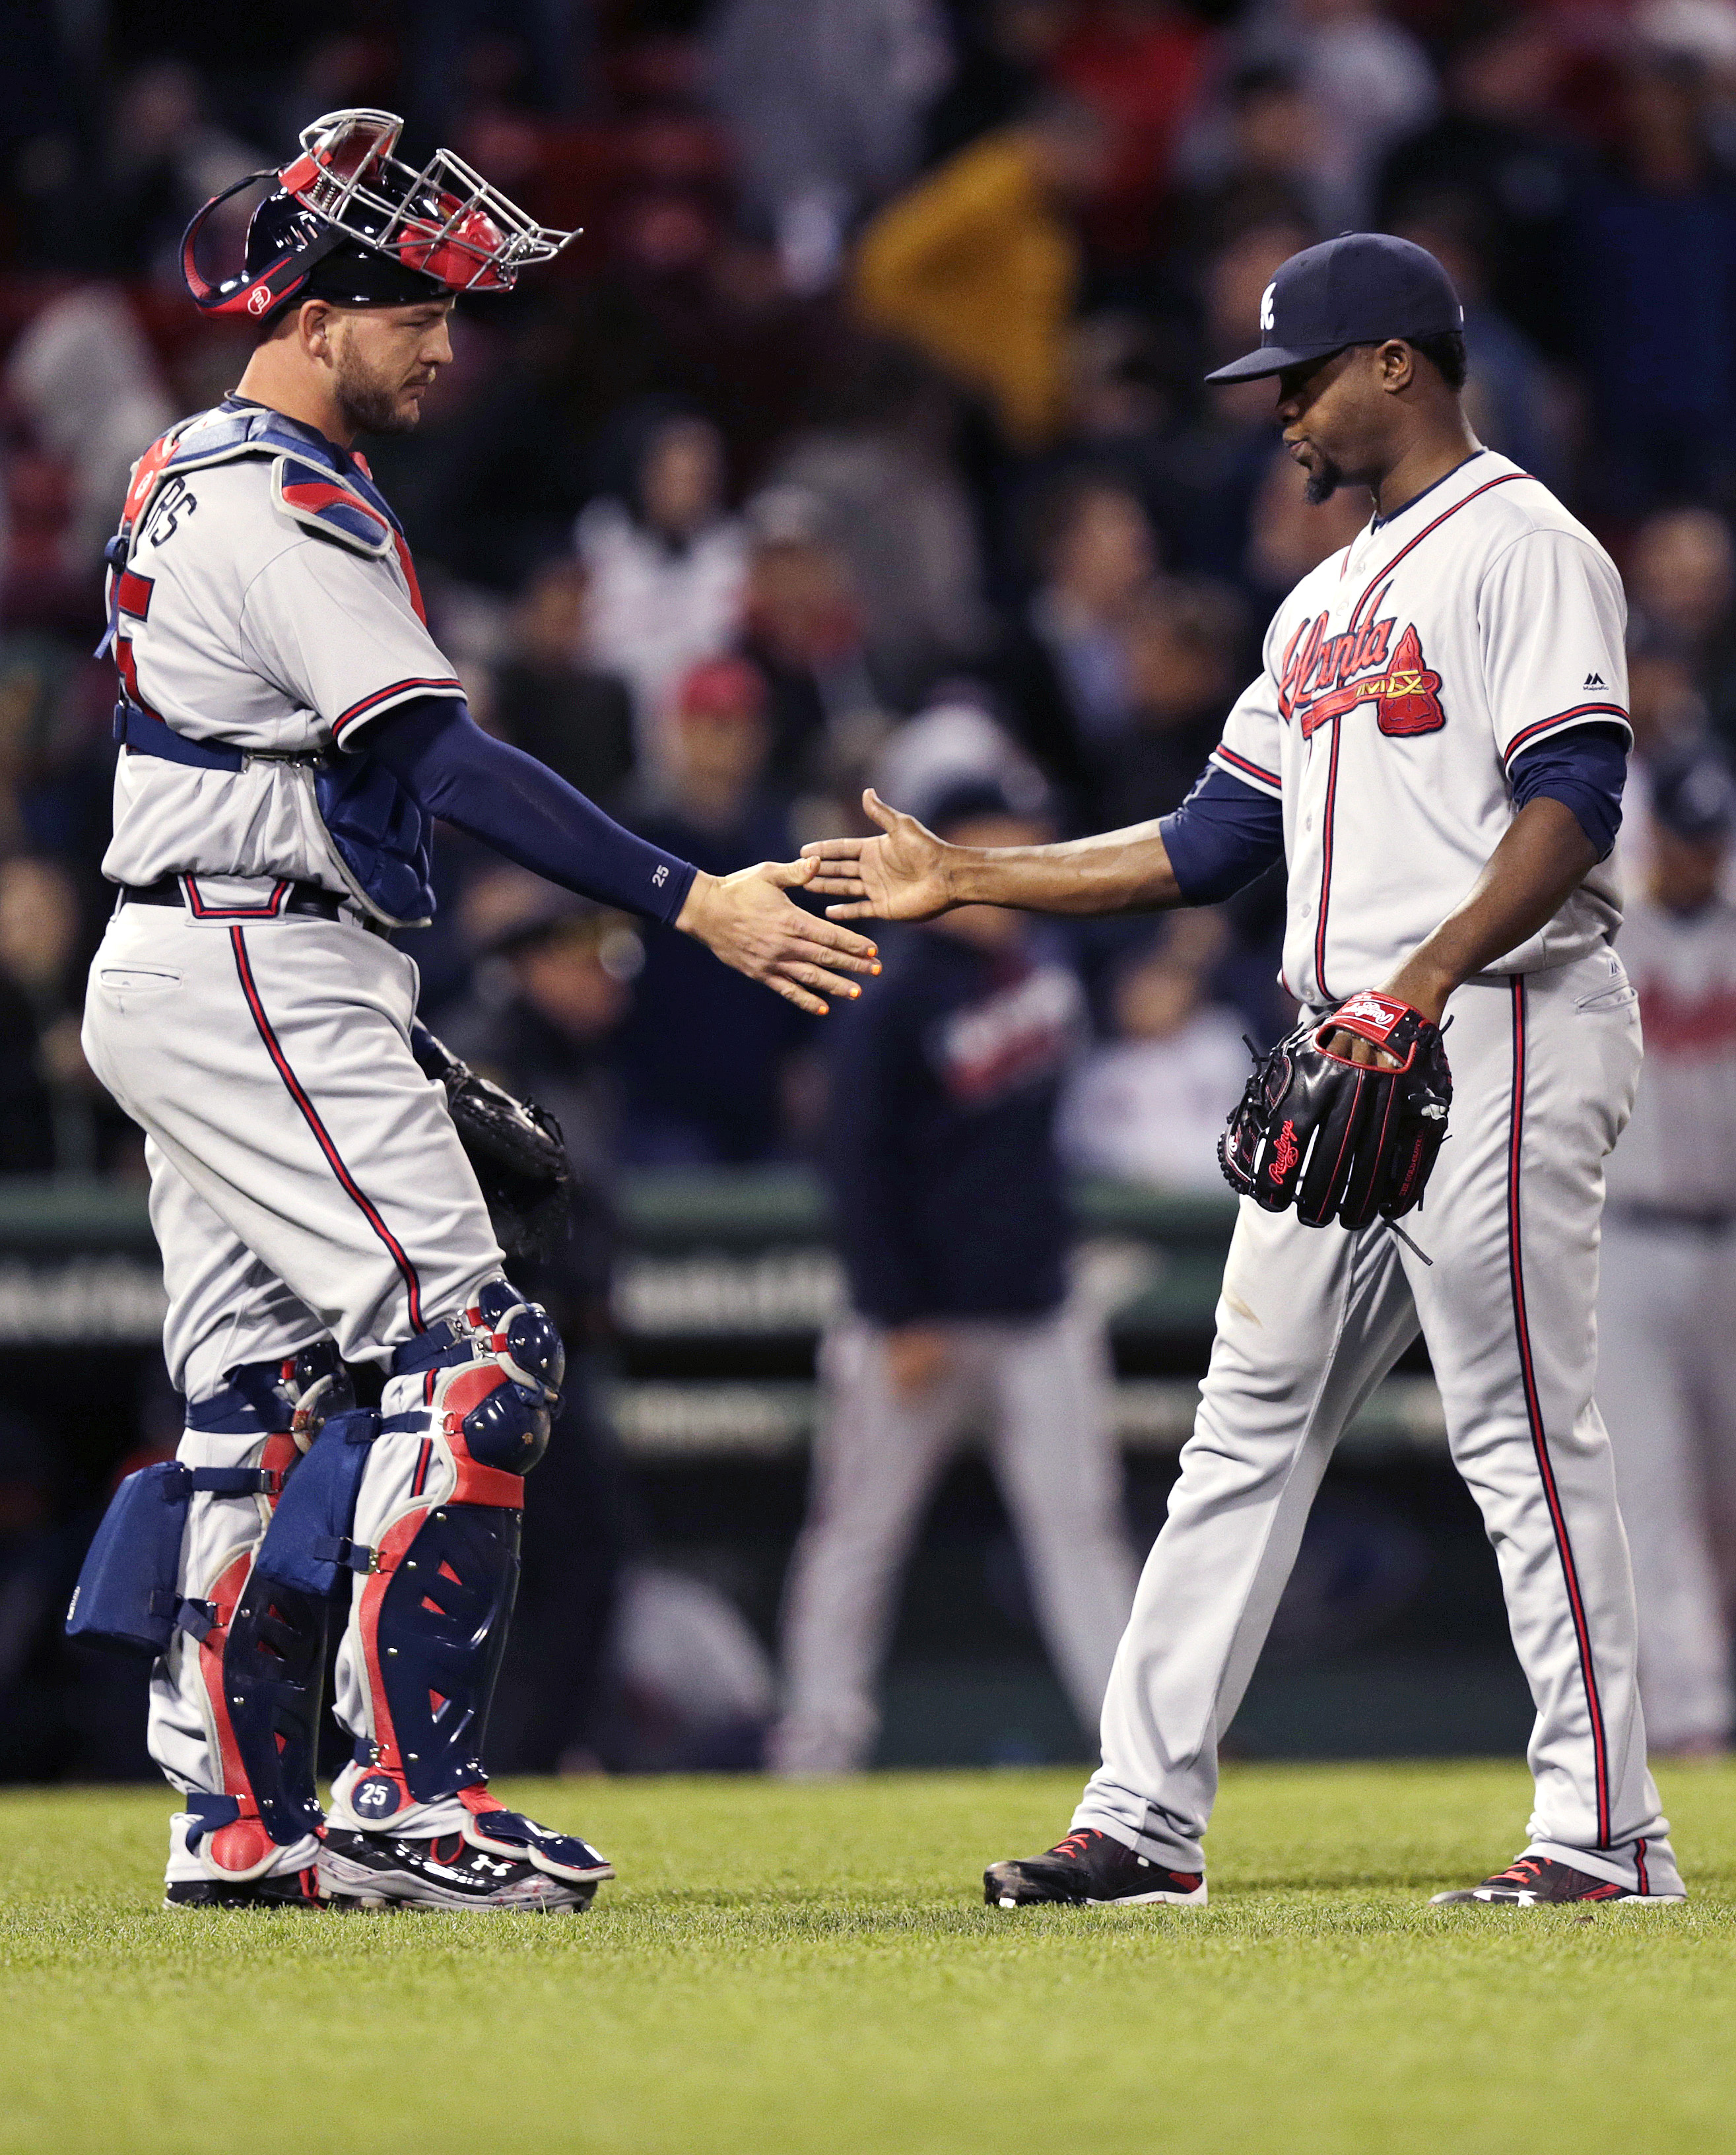 Atlanta Braves relief pitcher Arodys Vizcaino, right, is congratulated by catcher Tyler Flowers after earning a save during a baseball game against the Boston Red Sox at Fenway Park in Boston, Thursday, April 28, 2016. The Braves defeated the Red Sox 5-3.